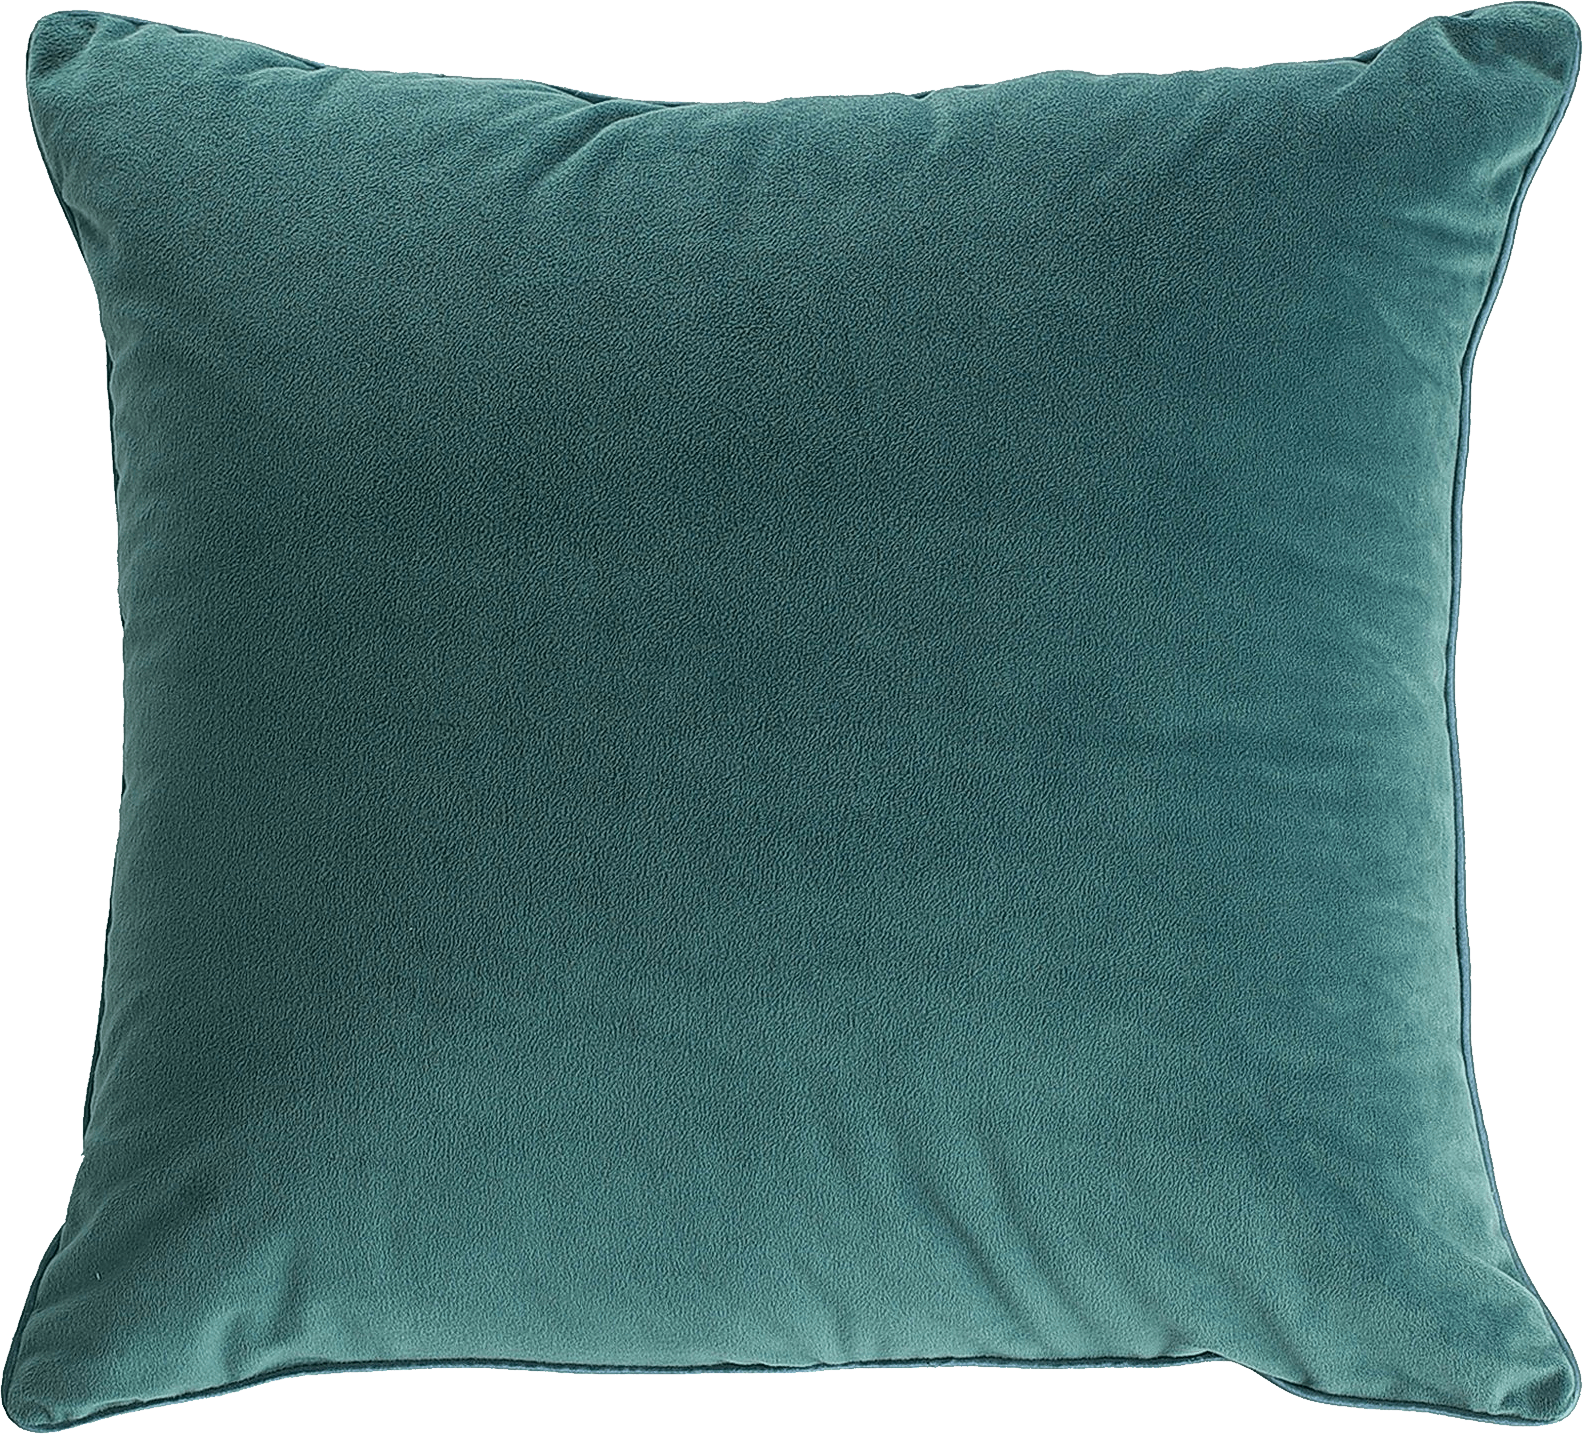 objects · pillow - Pillow HD PNG